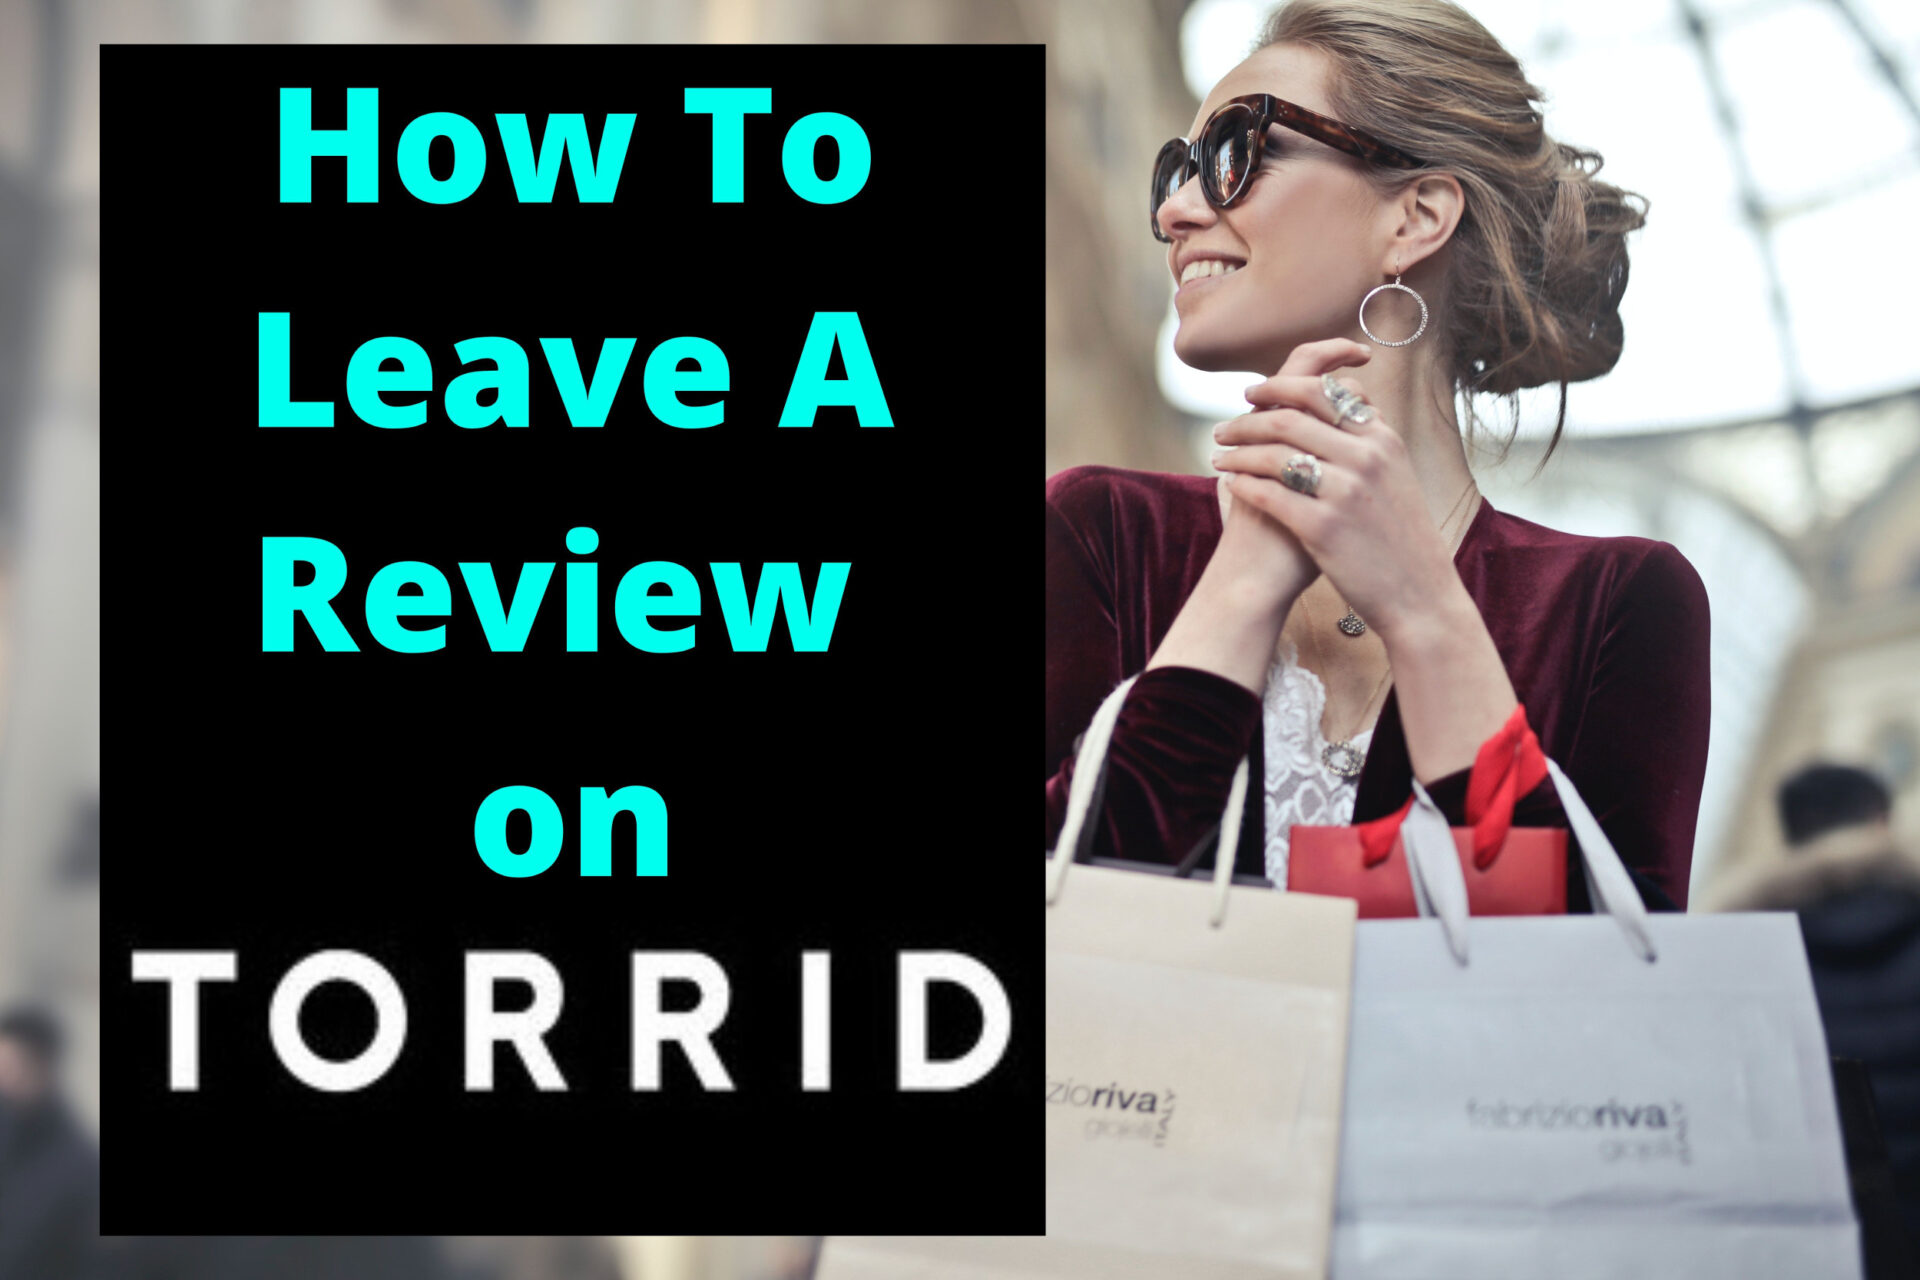 how_to_leave_a_review_on_torrid